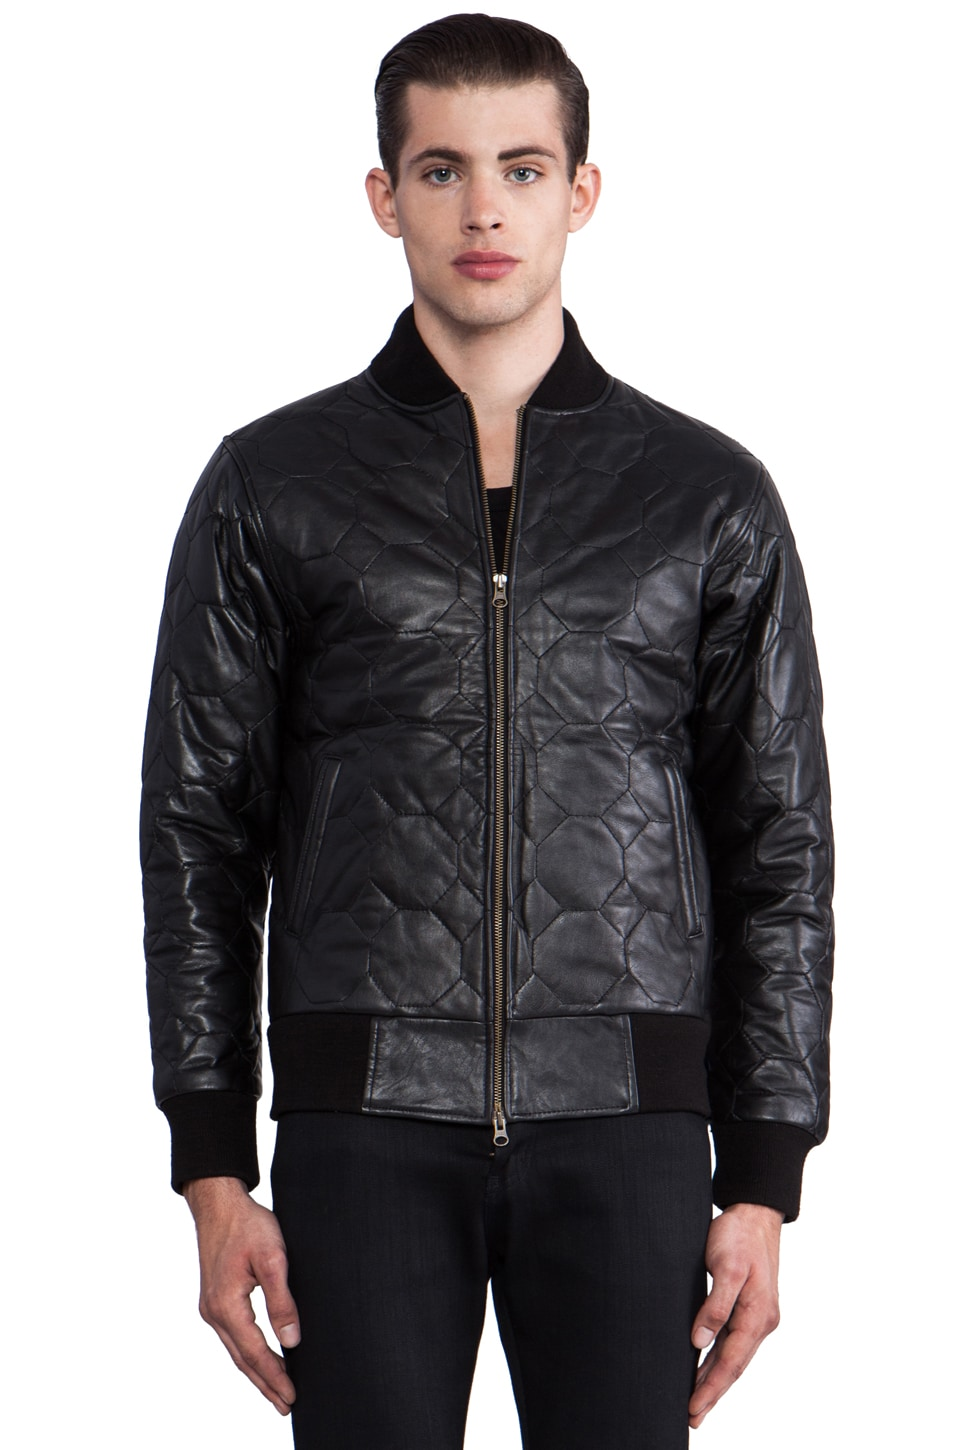 Iridium Leather Bomber in Black